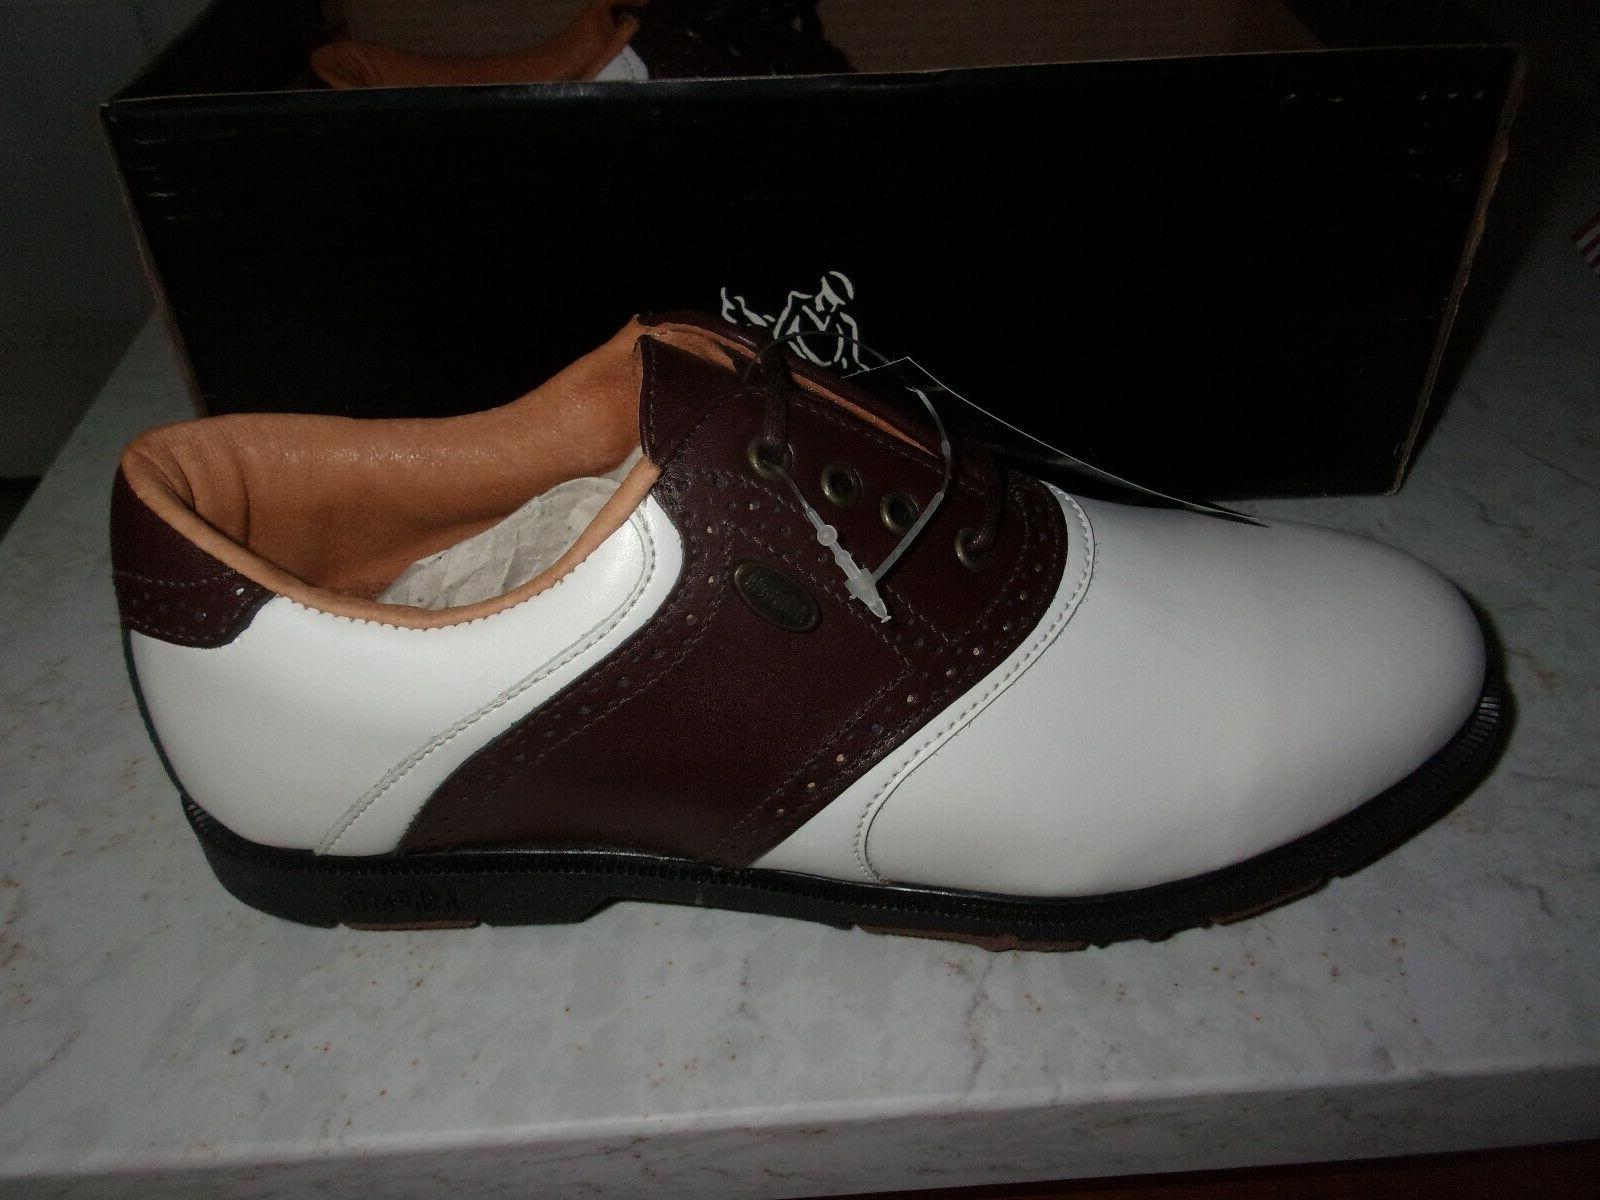 brand new footwear golf shoes size 8